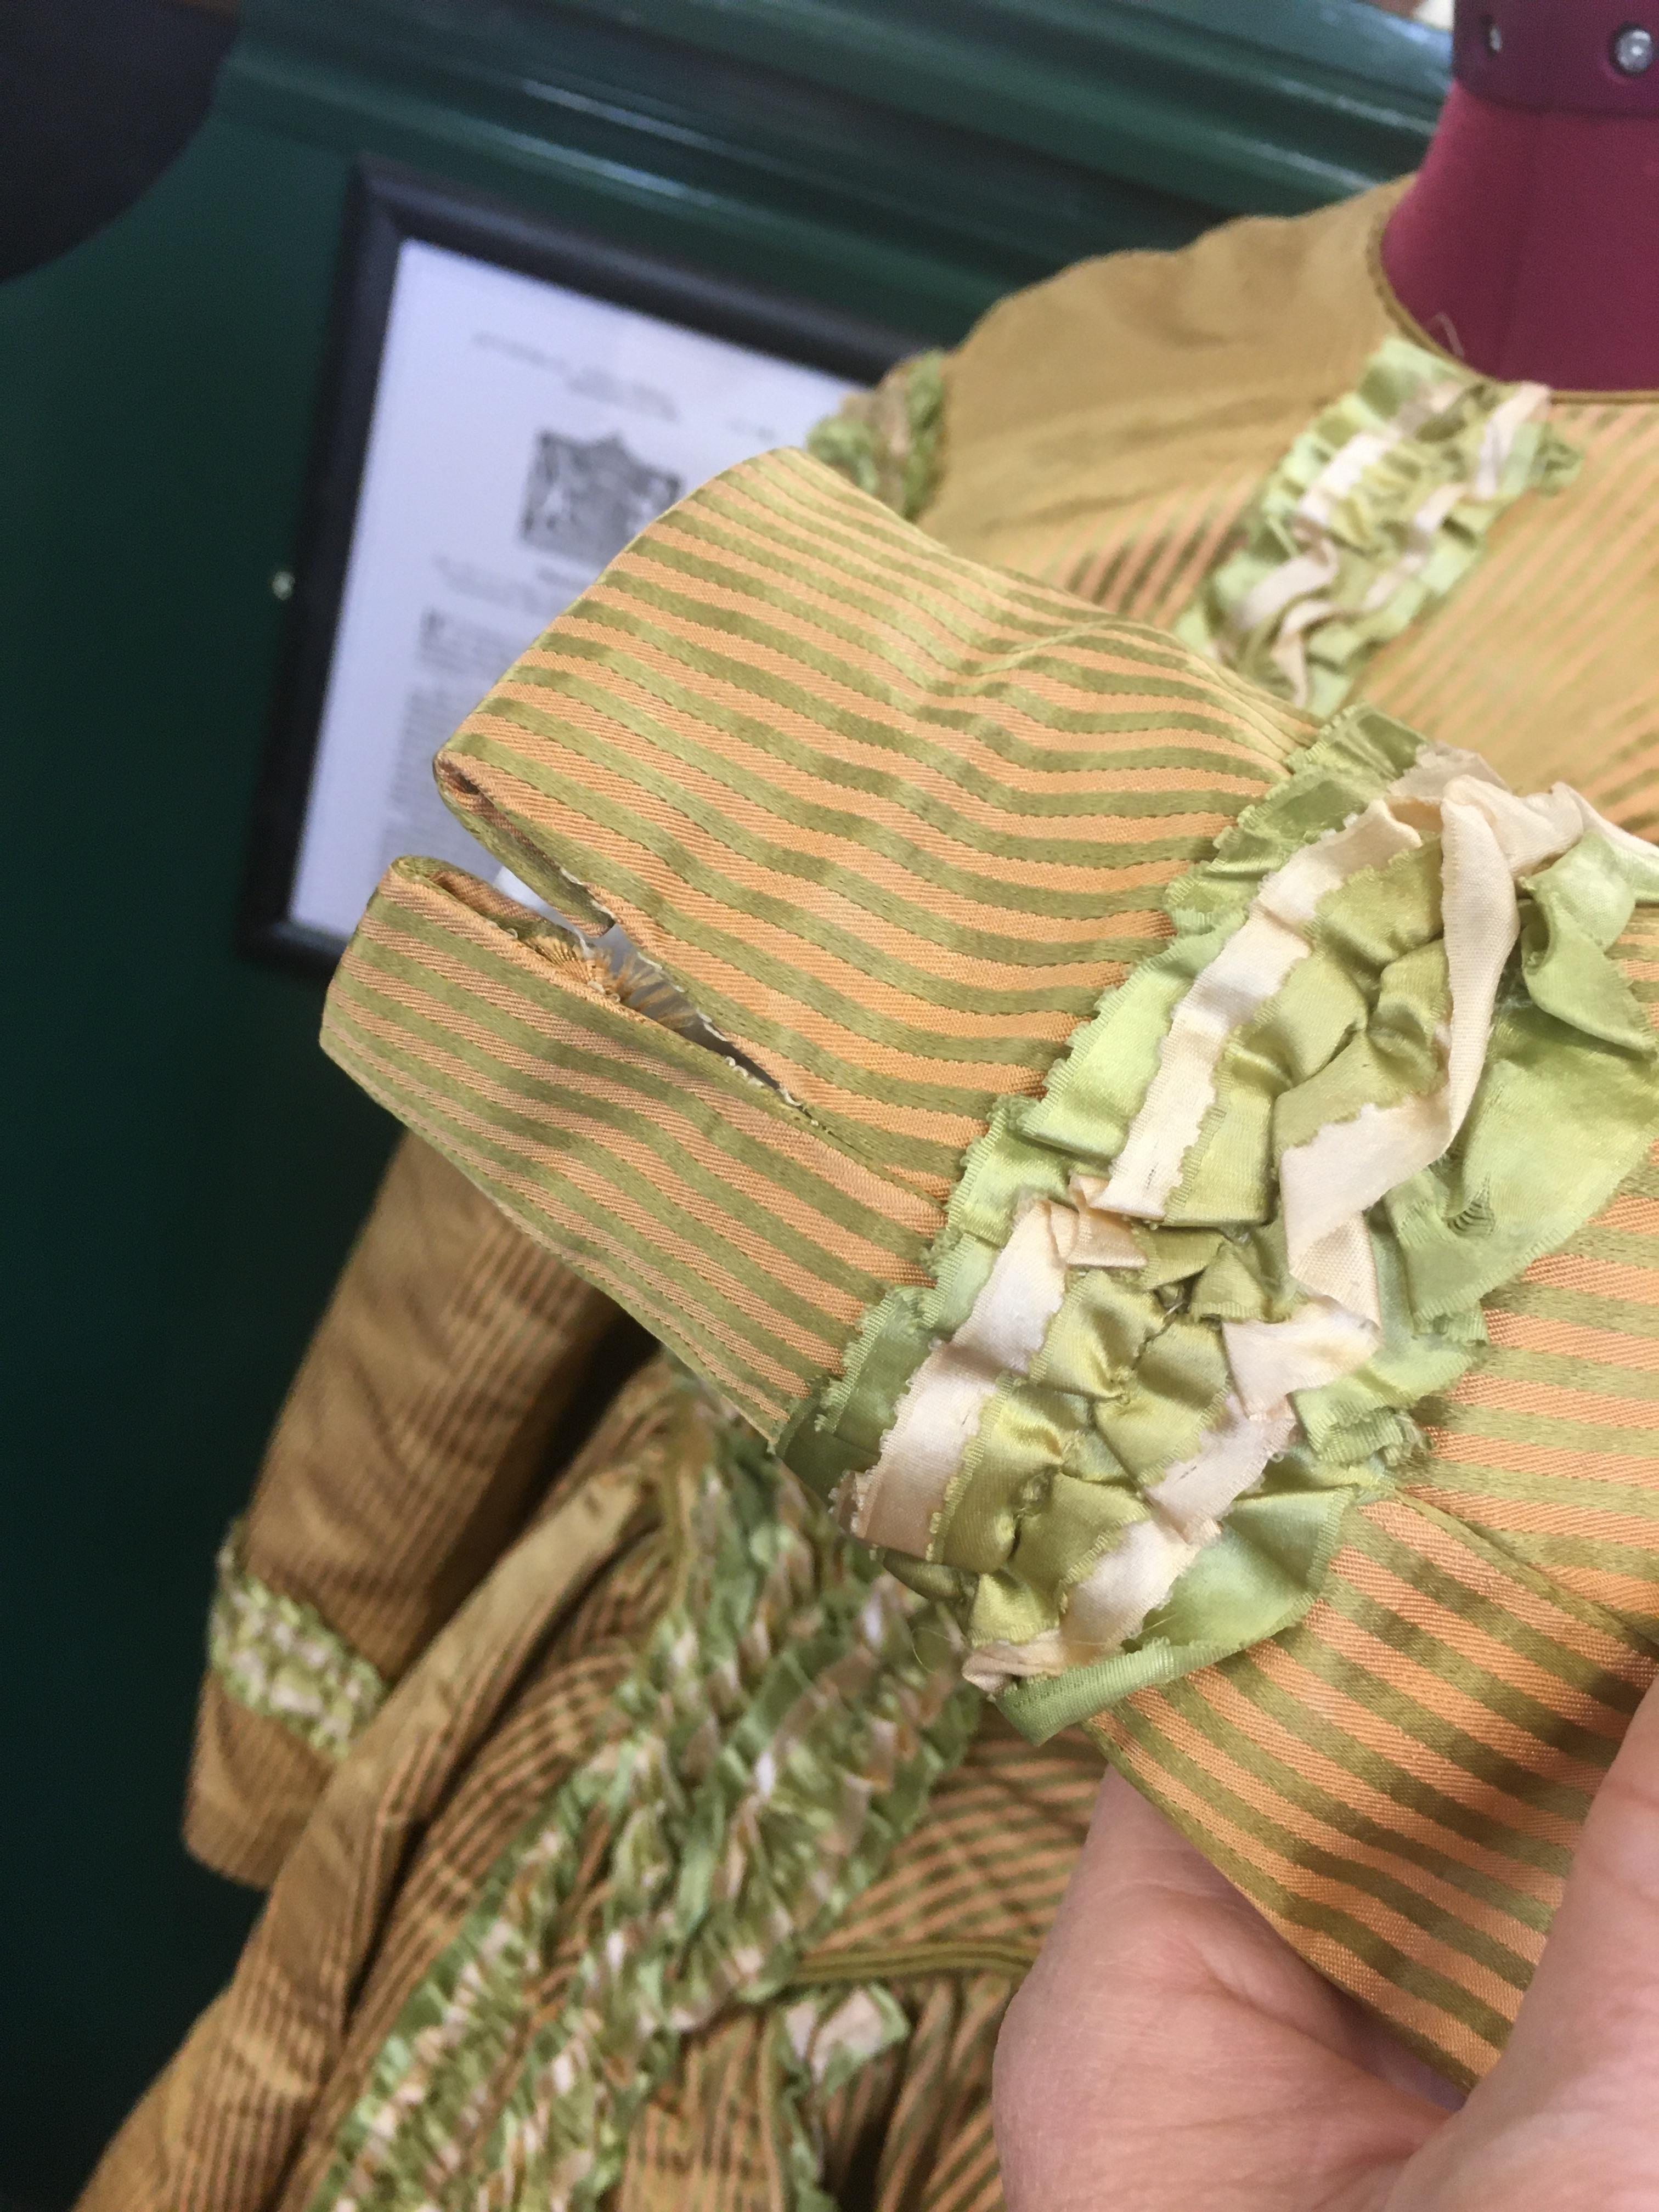 19THC SILK LADIES DRESS a mid 19thc apricot and olive green striped silk dress, decorated with - Image 9 of 9